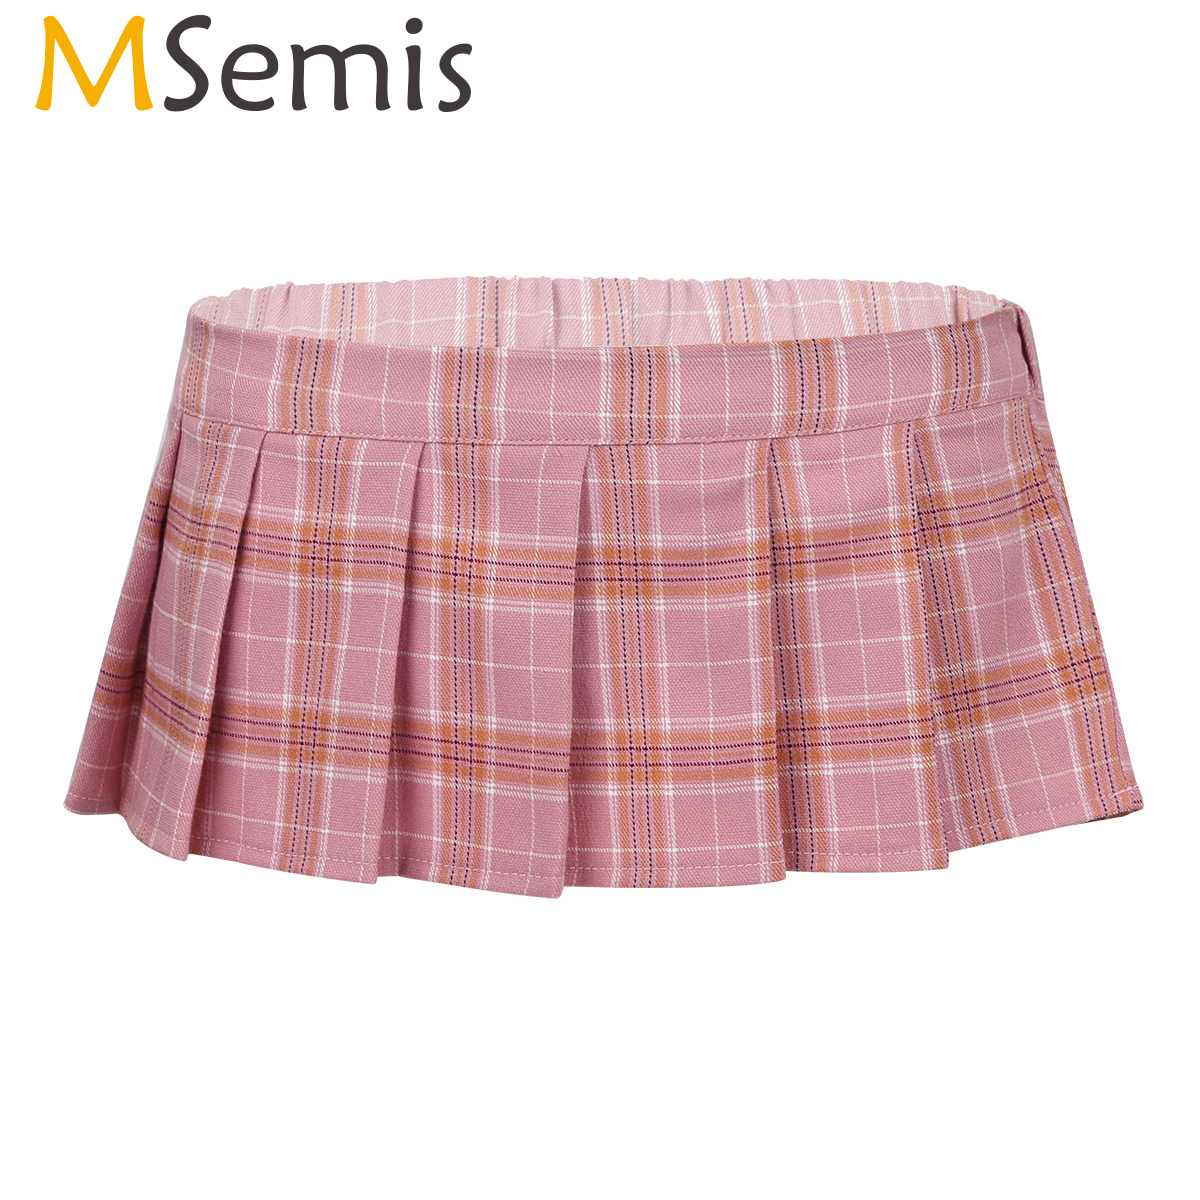 MSemis Women Super Mini Skirts Lady Sexy Japanese Schoolgirl Cosplay Roleplay Costume Lingerie Scottish Plaid Pleated Underskirt